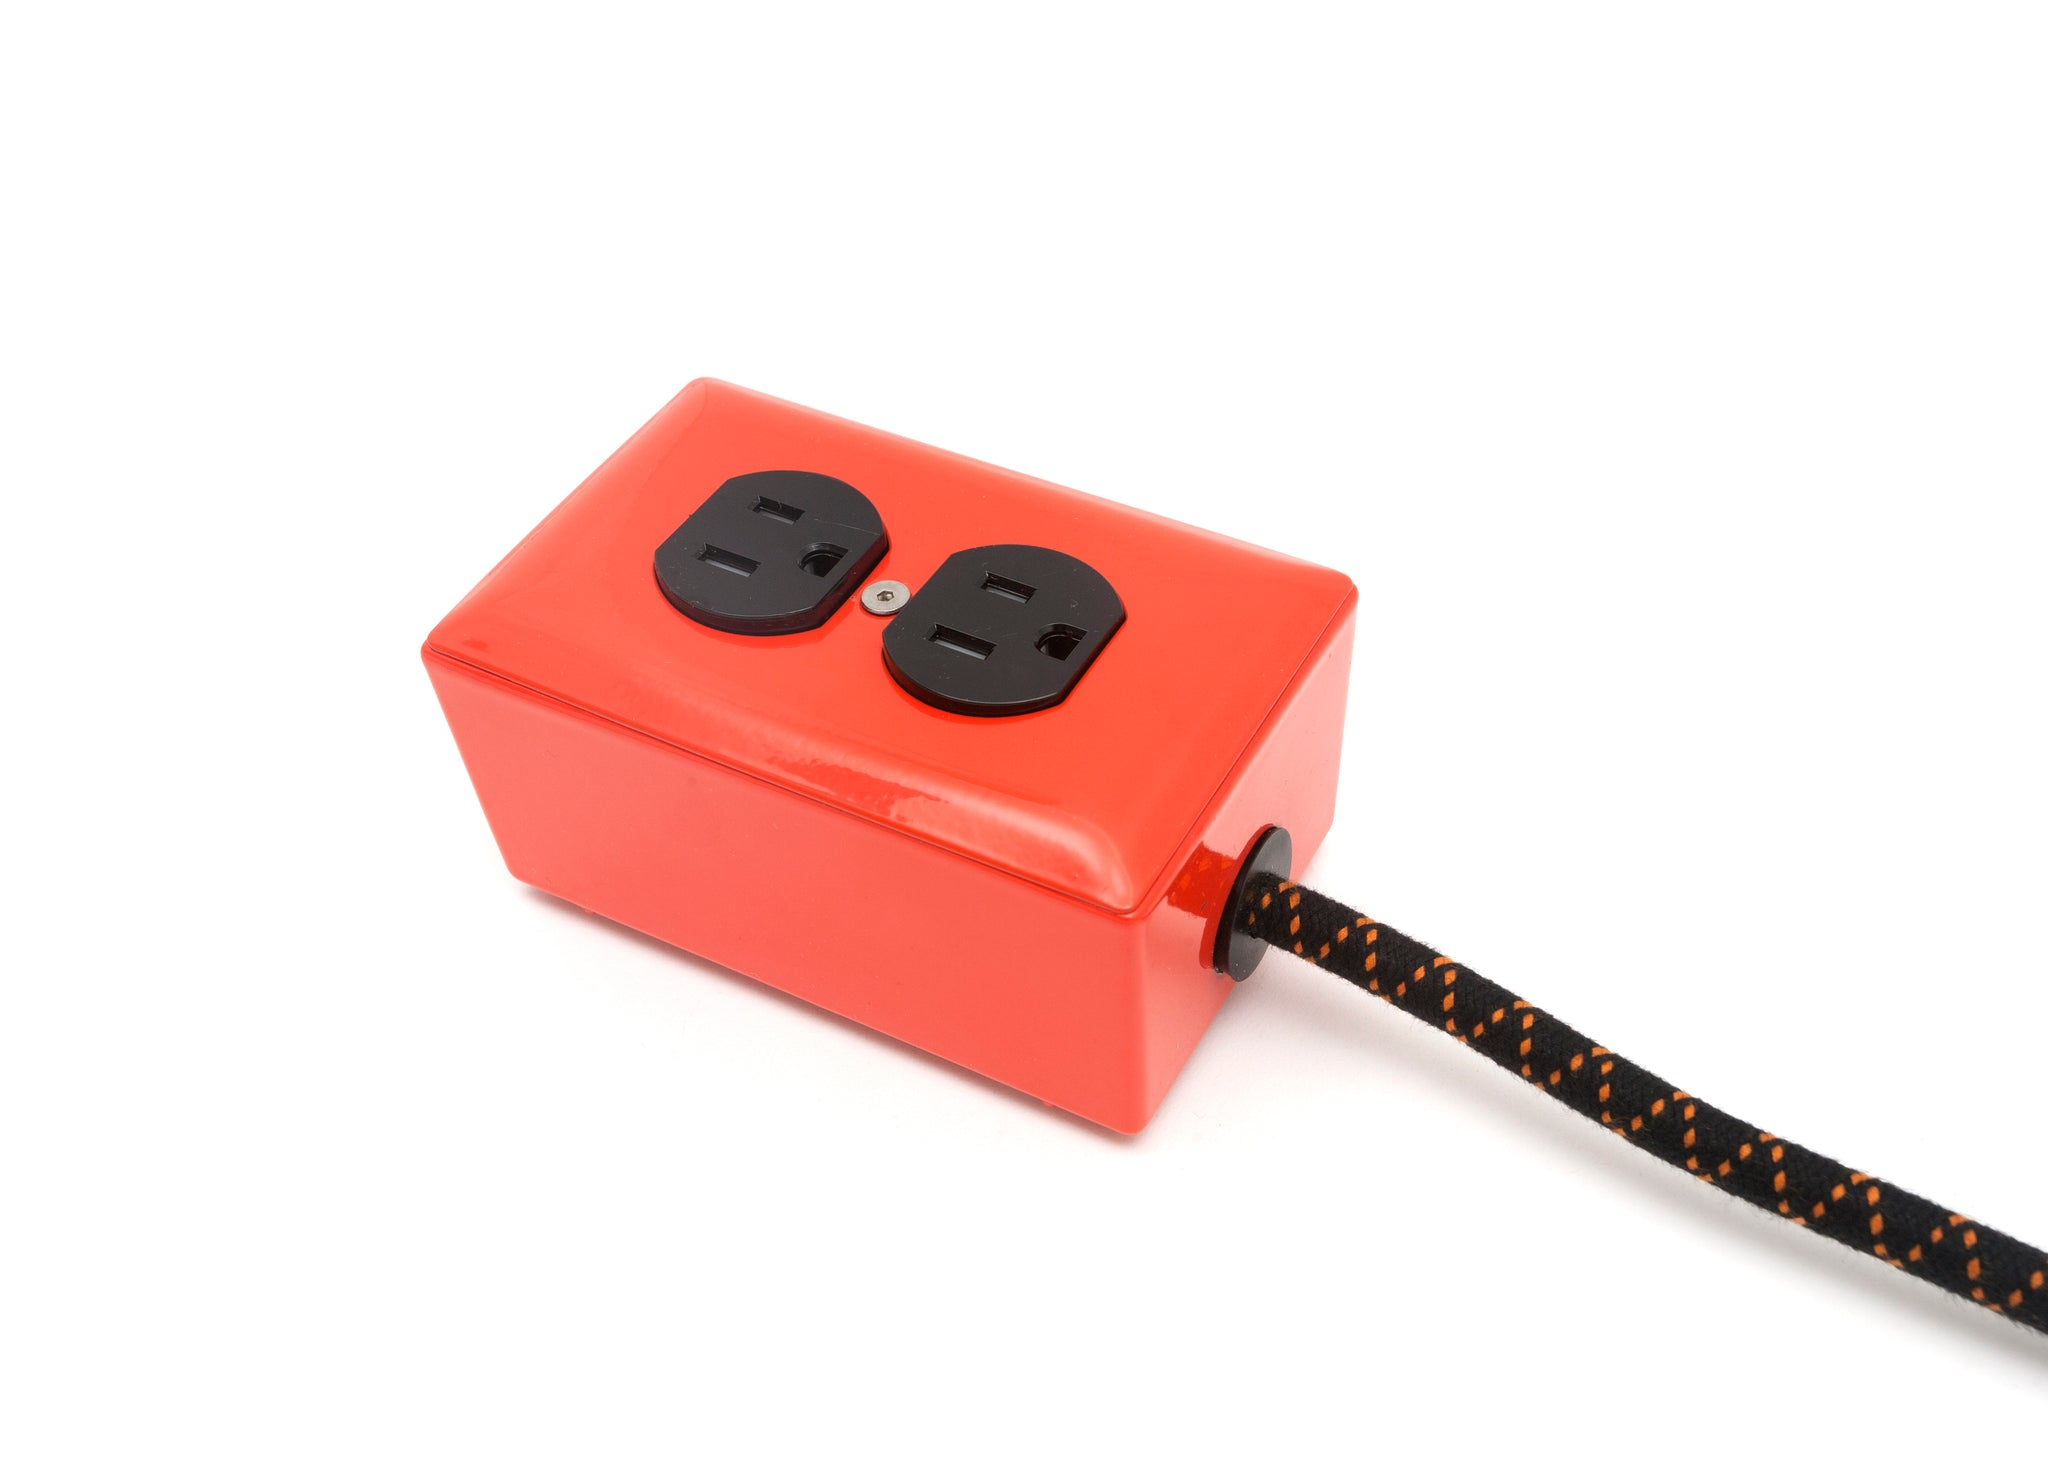 New! Extō Pumpkin Orange - A Modern Dual-Tamper-Resistant Outlet, 15-AMP Extension Cord